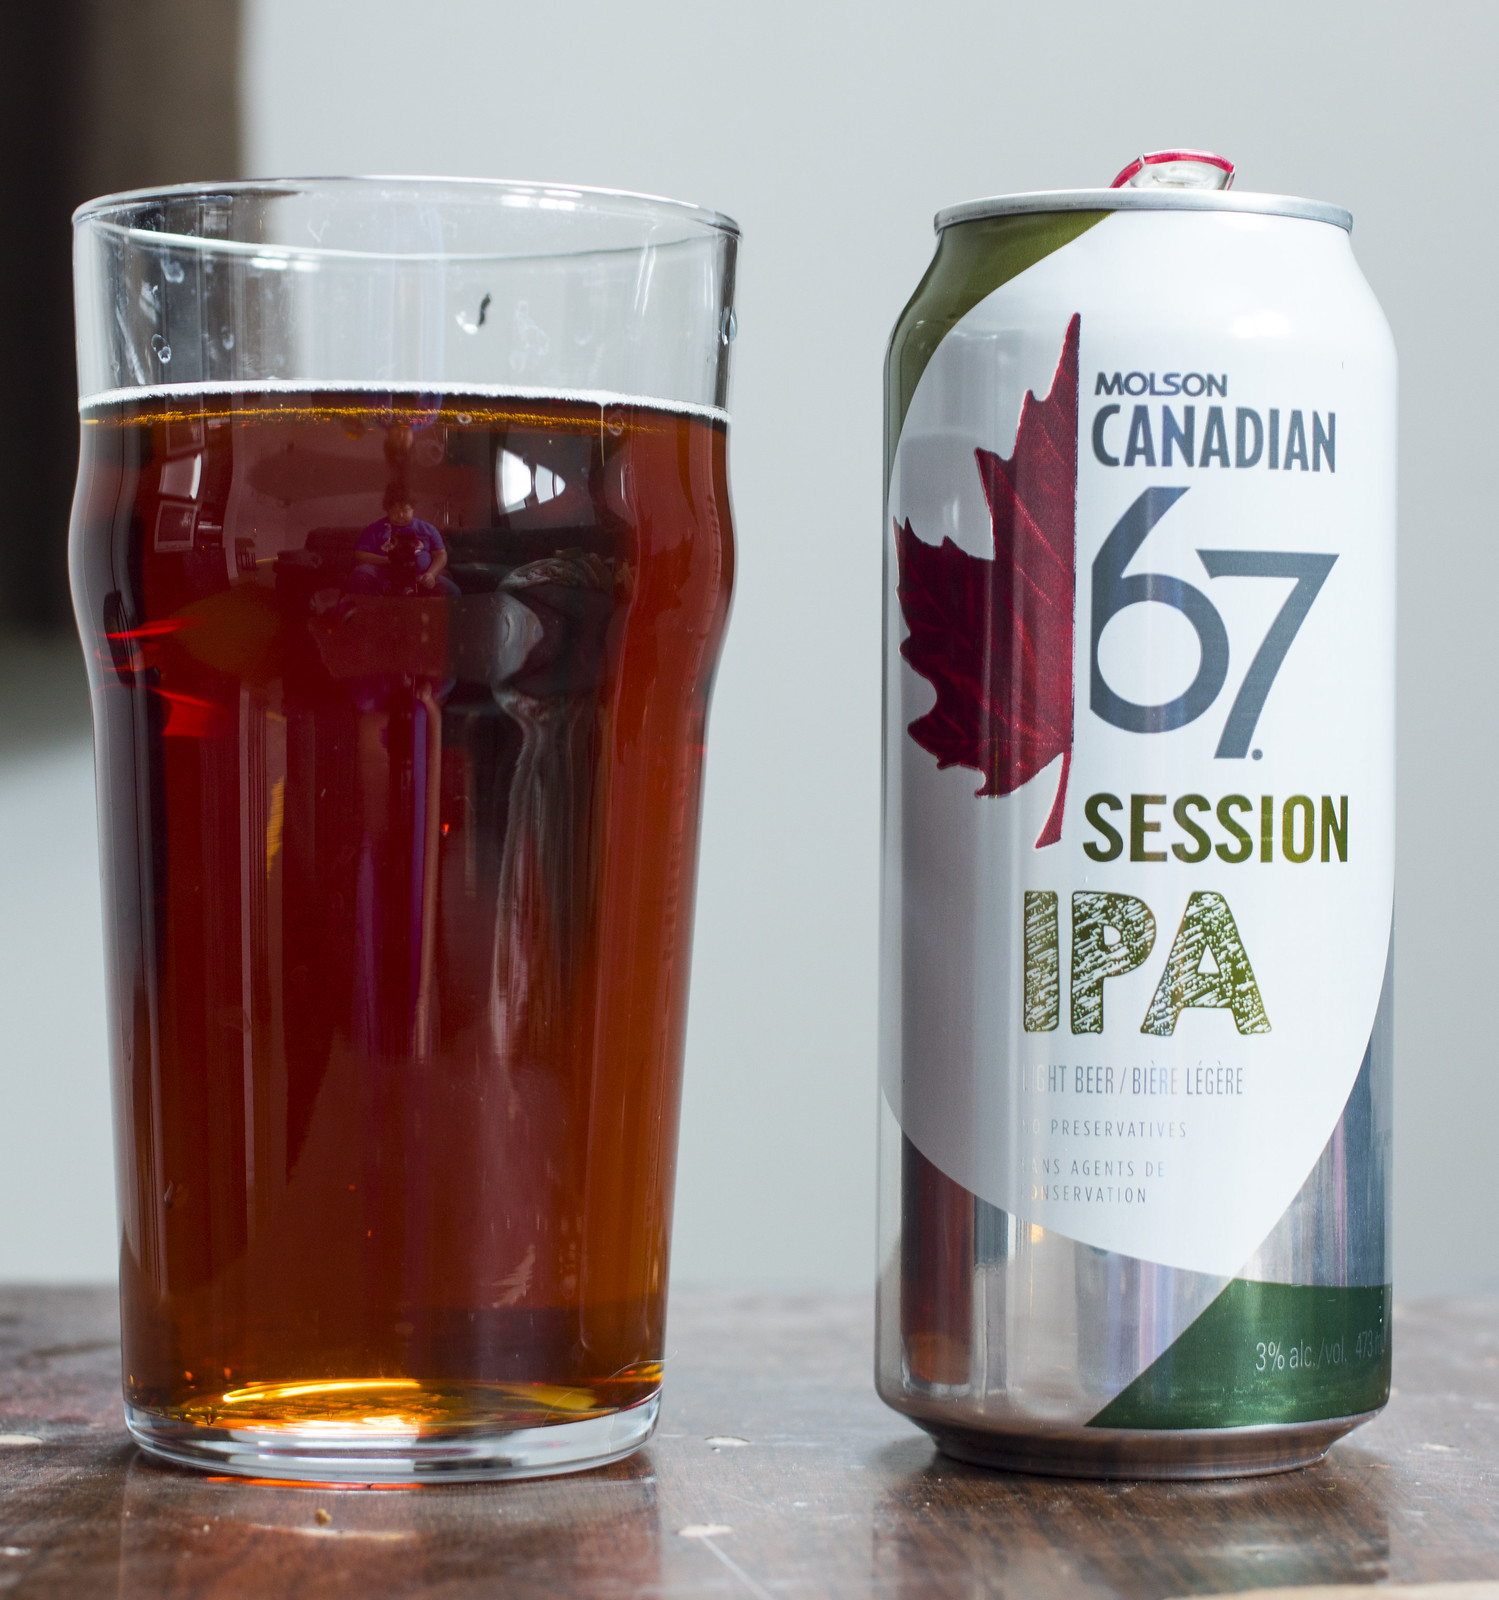 Review: Molson Canadian 67 Session IPA